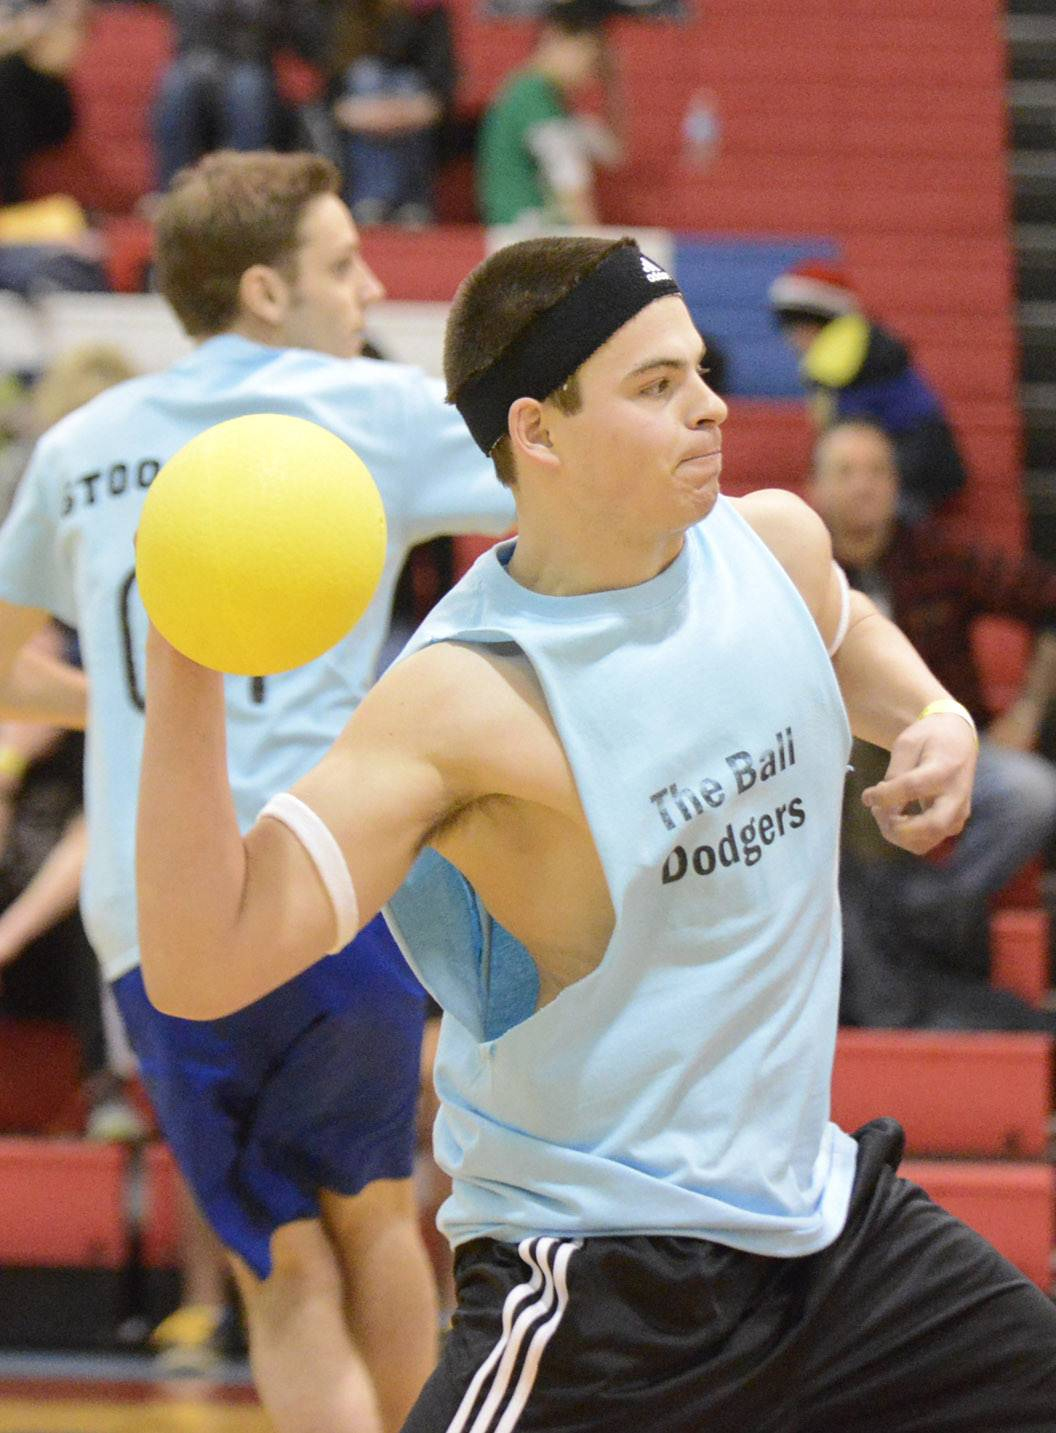 Justin Becker of West Dundee winds up to whip a ball at team Tropic Thunder during the dodgeball tournament at Dundee-Crown High School in Carpentersville on Saturday. He is a member of The Ball Dodgers, made up of 2012 alumni of Dundee-Crown.